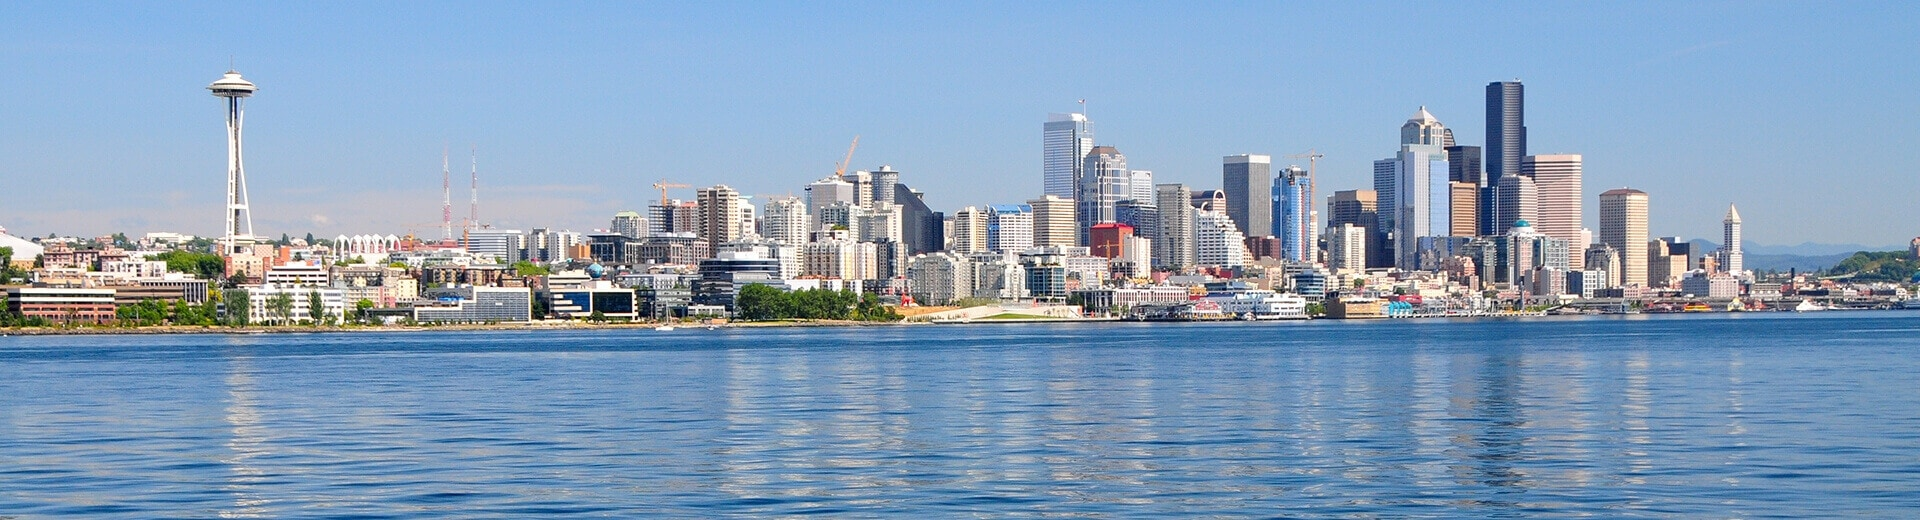 What is it like to live in Seattle, Washington?